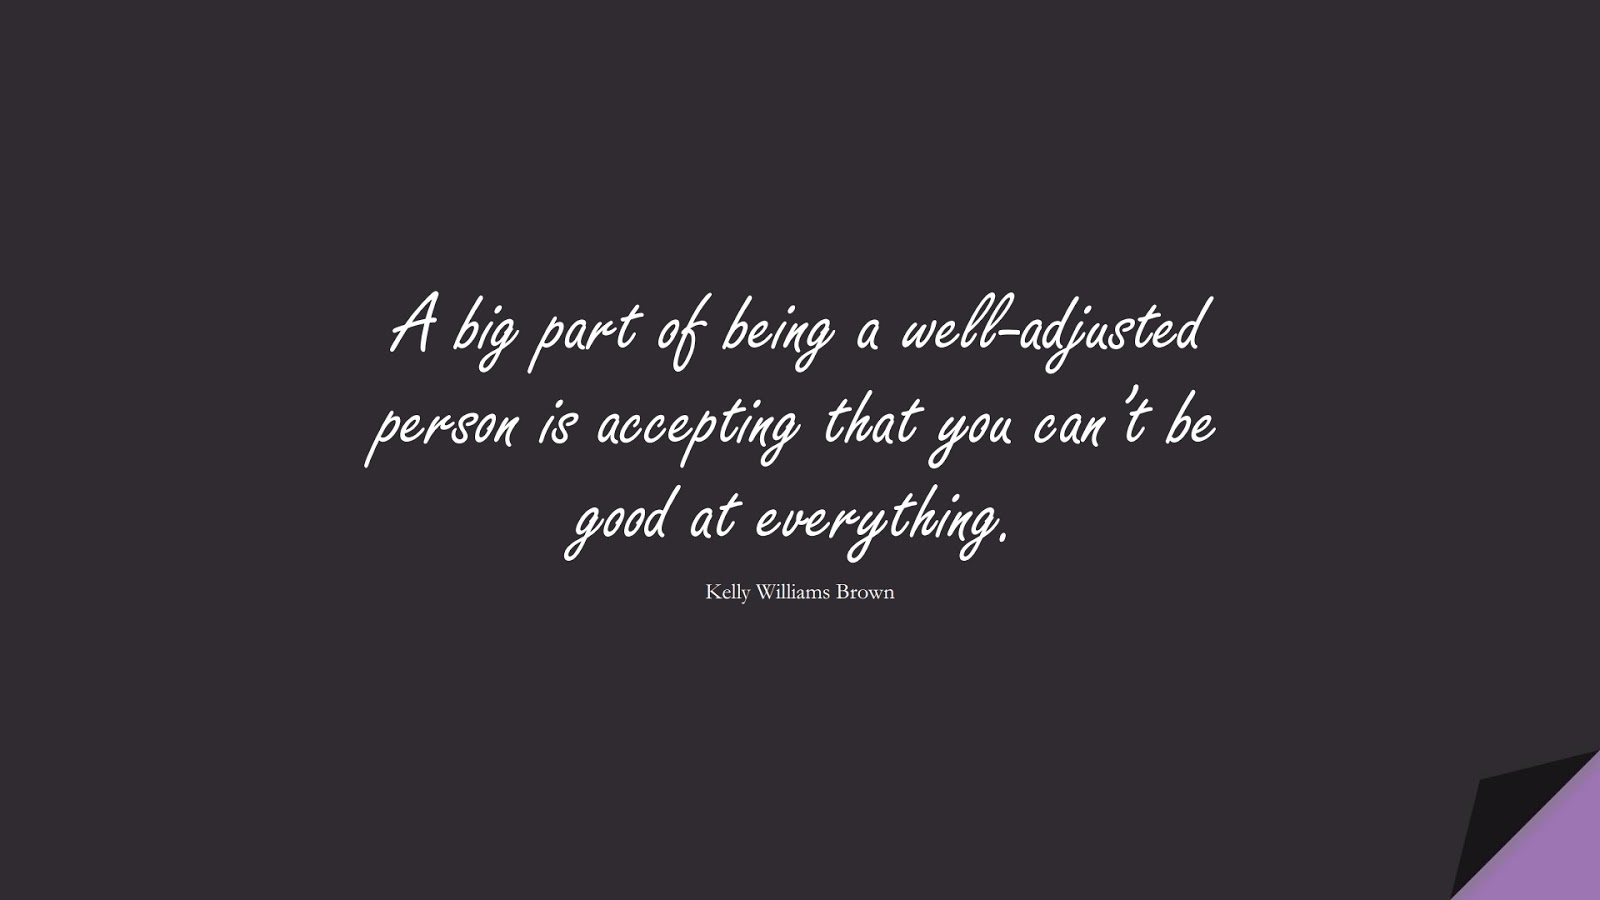 A big part of being a well-adjusted person is accepting that you can't be good at everything. (Kelly Williams Brown);  #PositiveQuotes